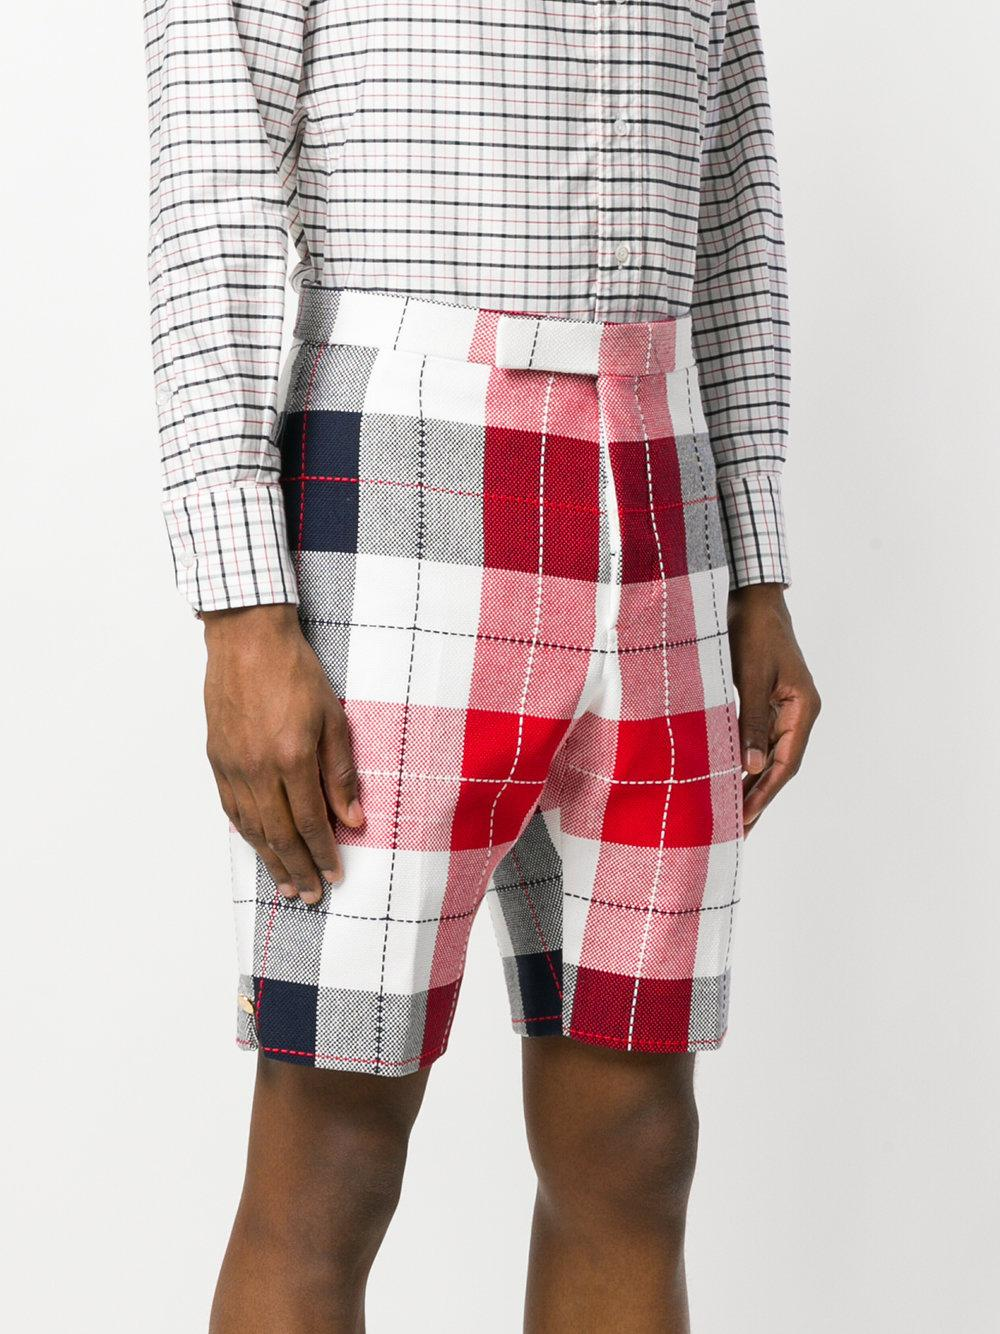 Classic Backstrap Short In Large Buffalo Check Summer Tweed - Multicolour Thom Browne Shopping Online Sale Online Clearance Free Shipping New Arrival For Sale gINuG8